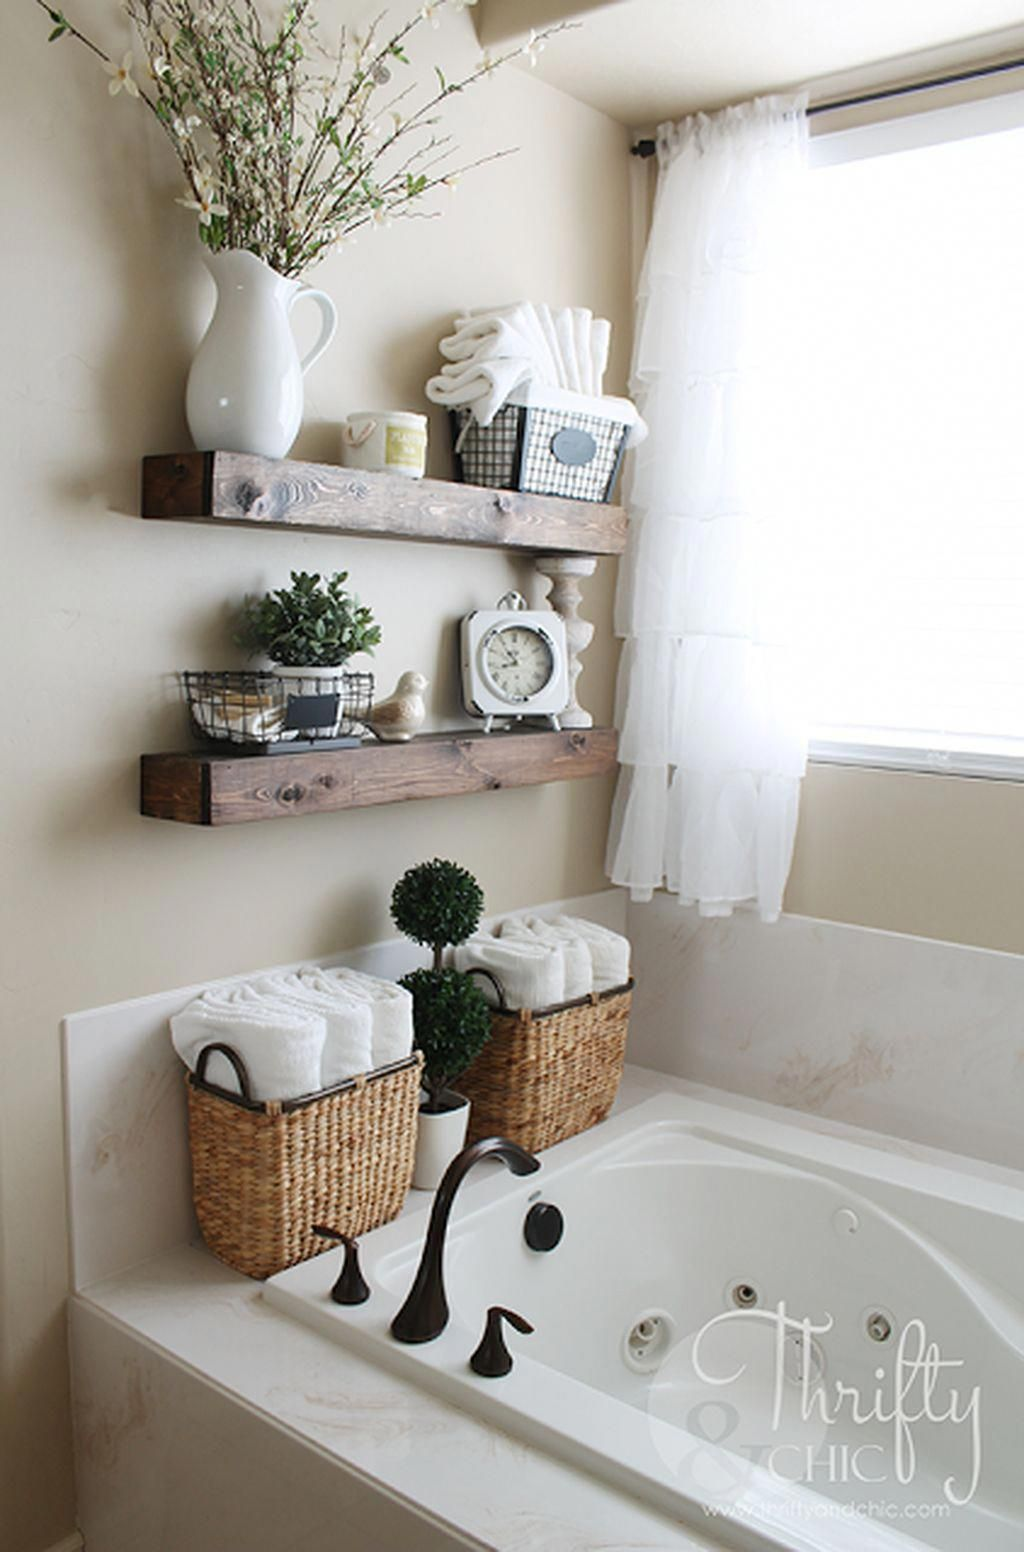 Awesome inexpensive bath decoration that will make your home